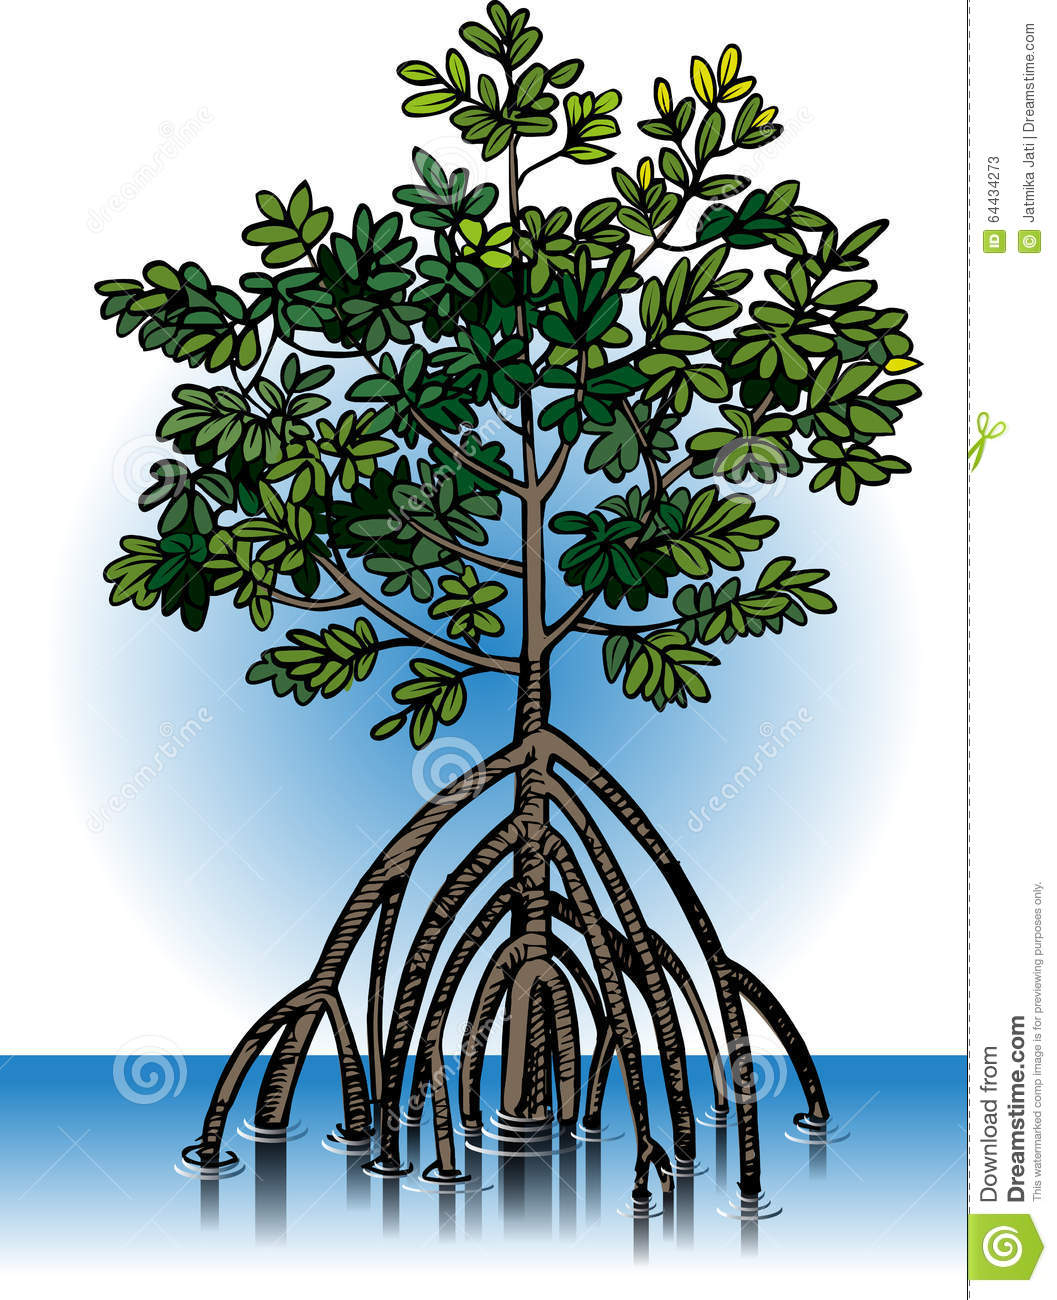 vector mangrove plants stock illustrations 8 vector mangrove plants stock illustrations vectors clipart dreamstime dreamstime com